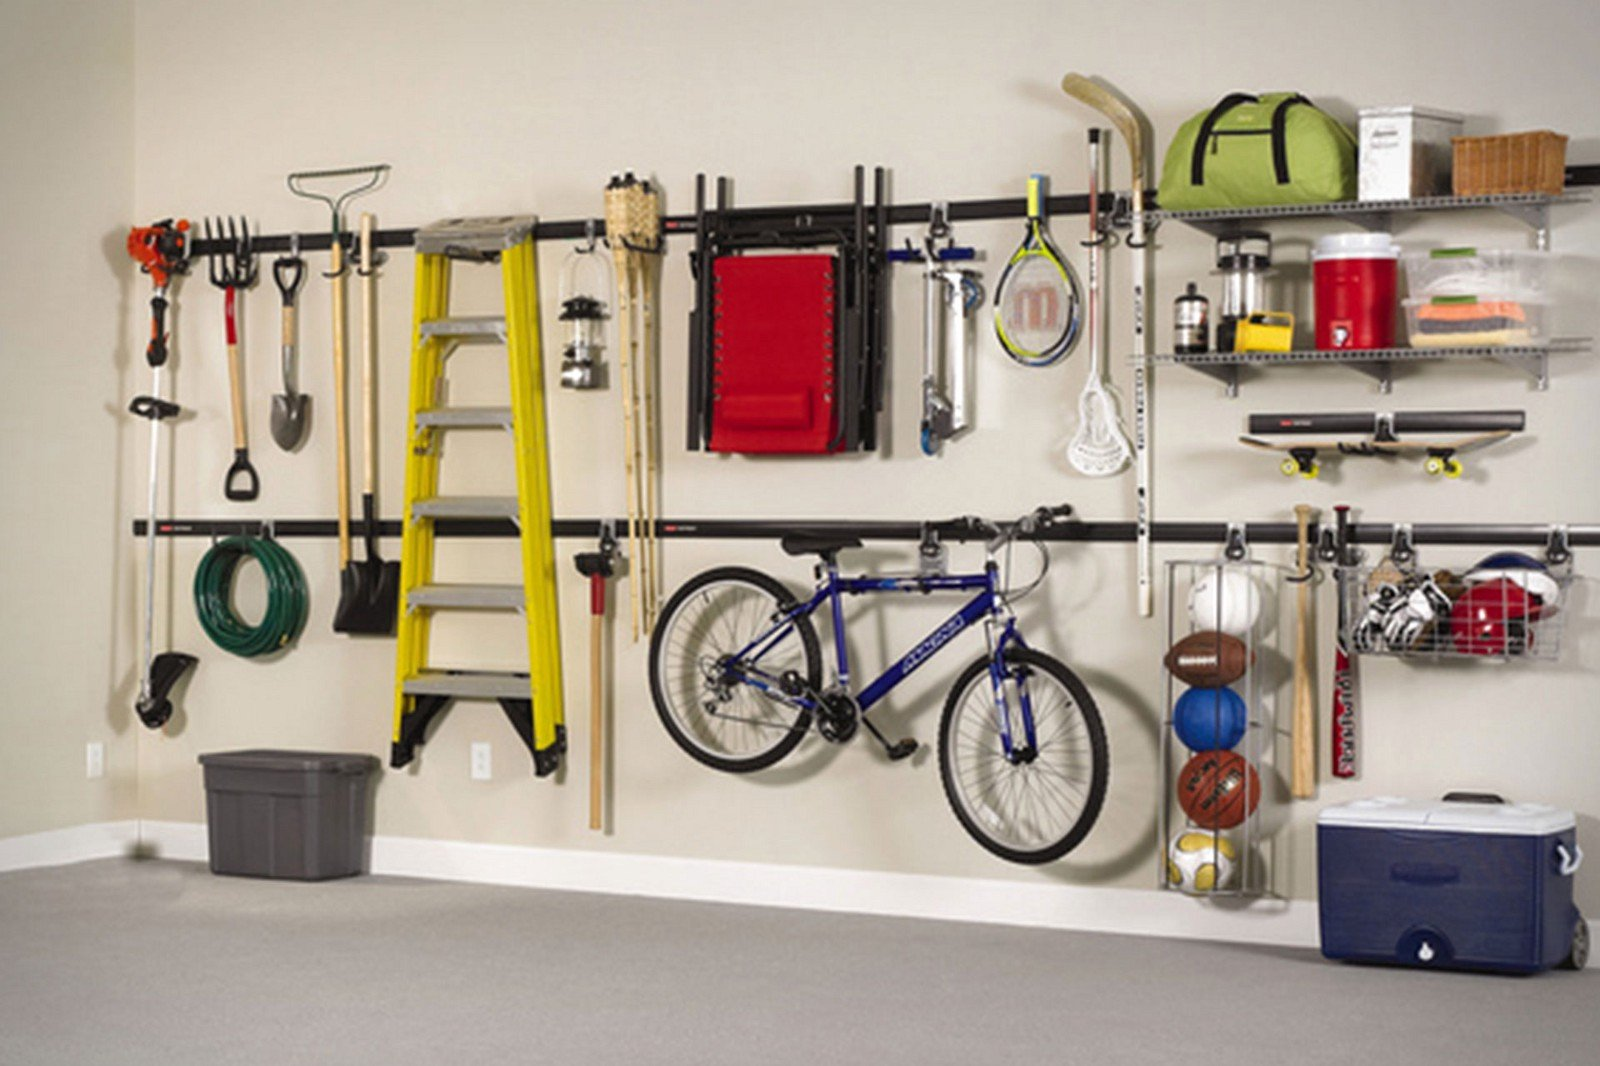 garage organization ideas 7 great garage storage ideas west coast self storage 15709